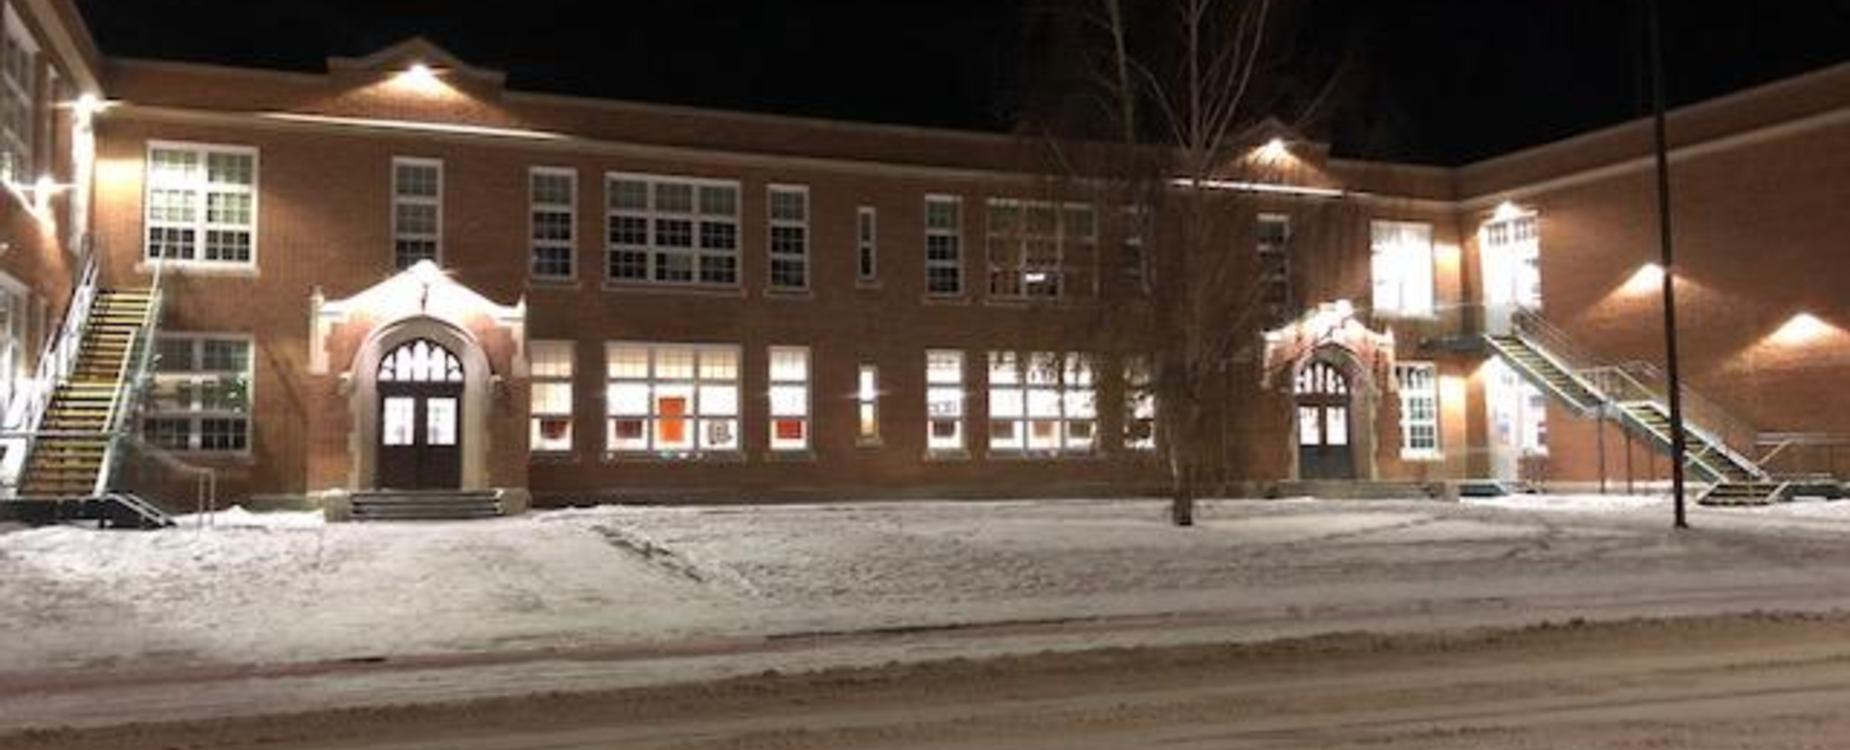 Mackenzie Middle School night view